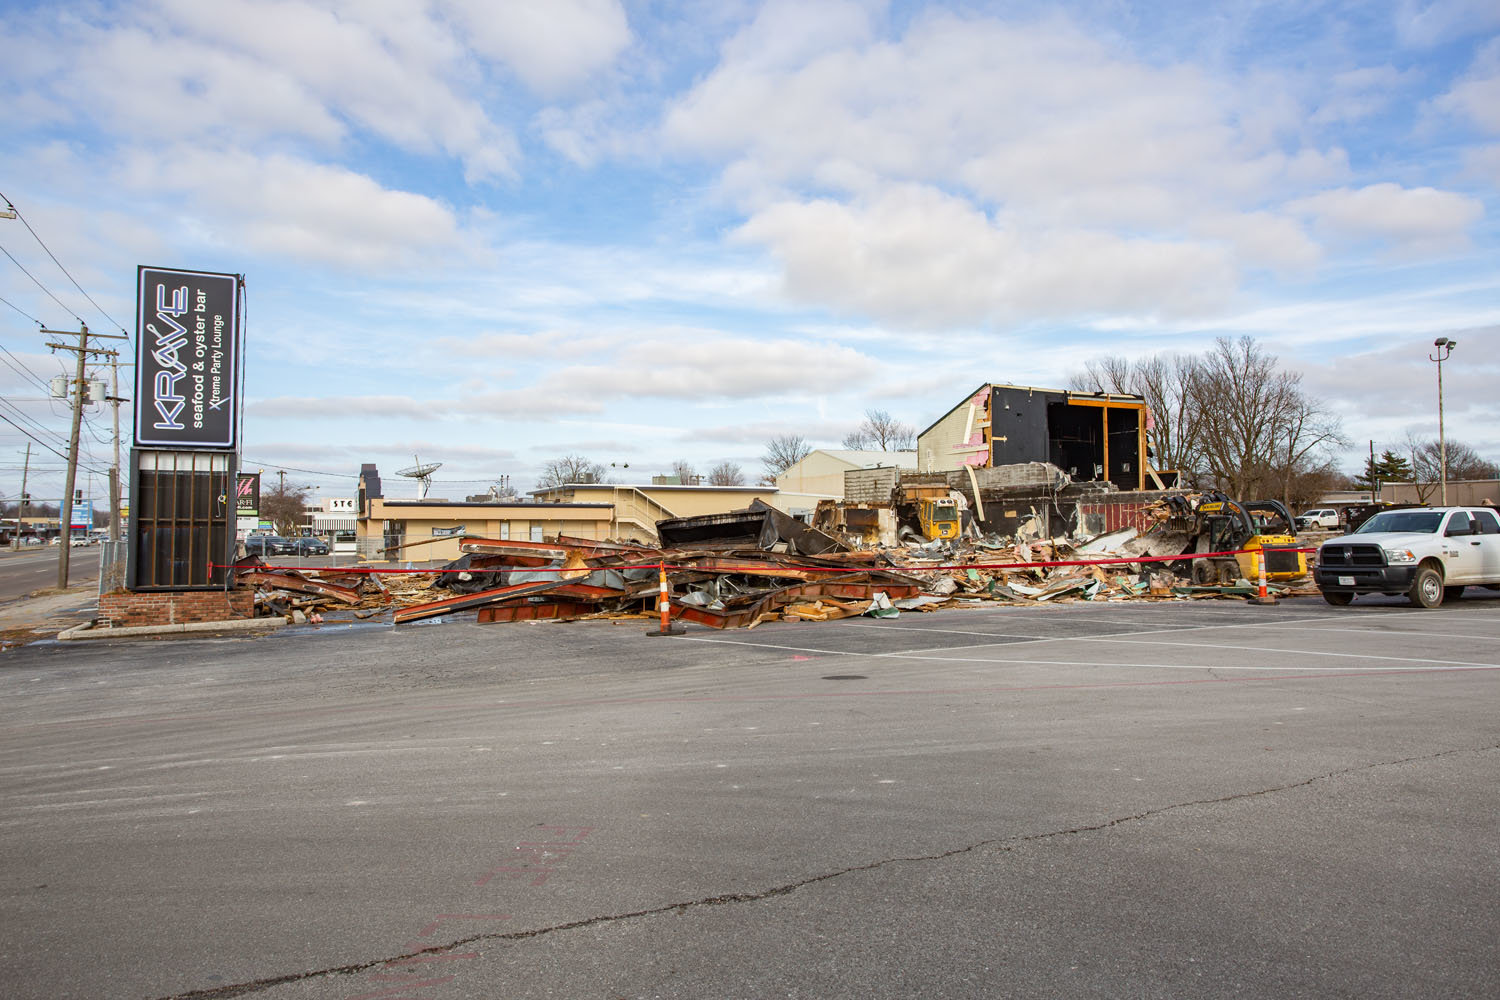 KRAVE NO MORE